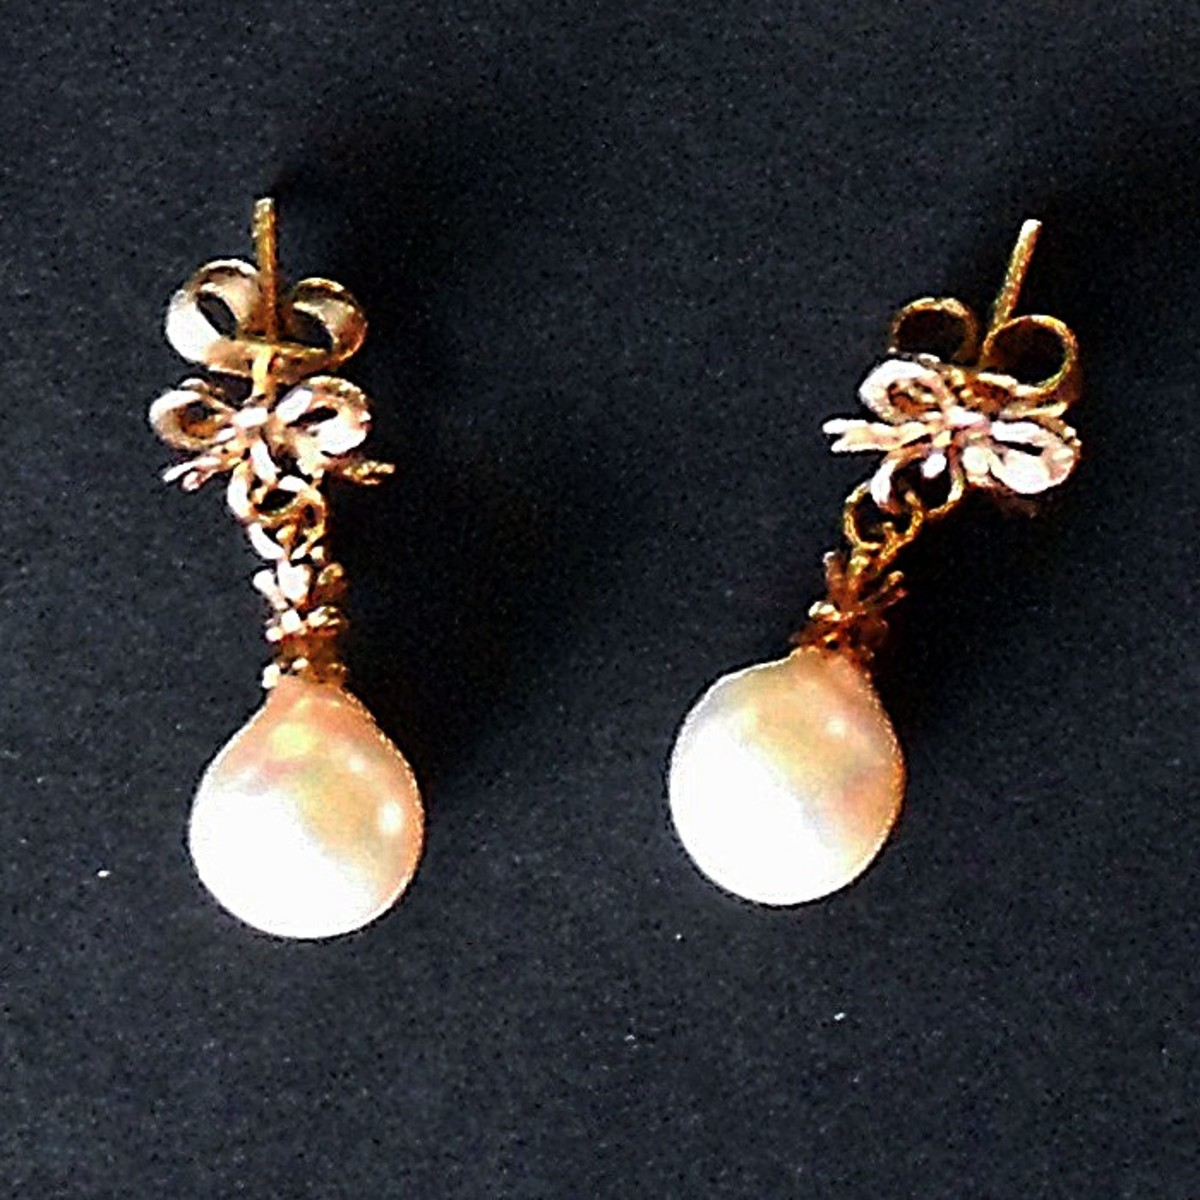 Pearls need careful care and should be wiped with a damp cloth after wearing.